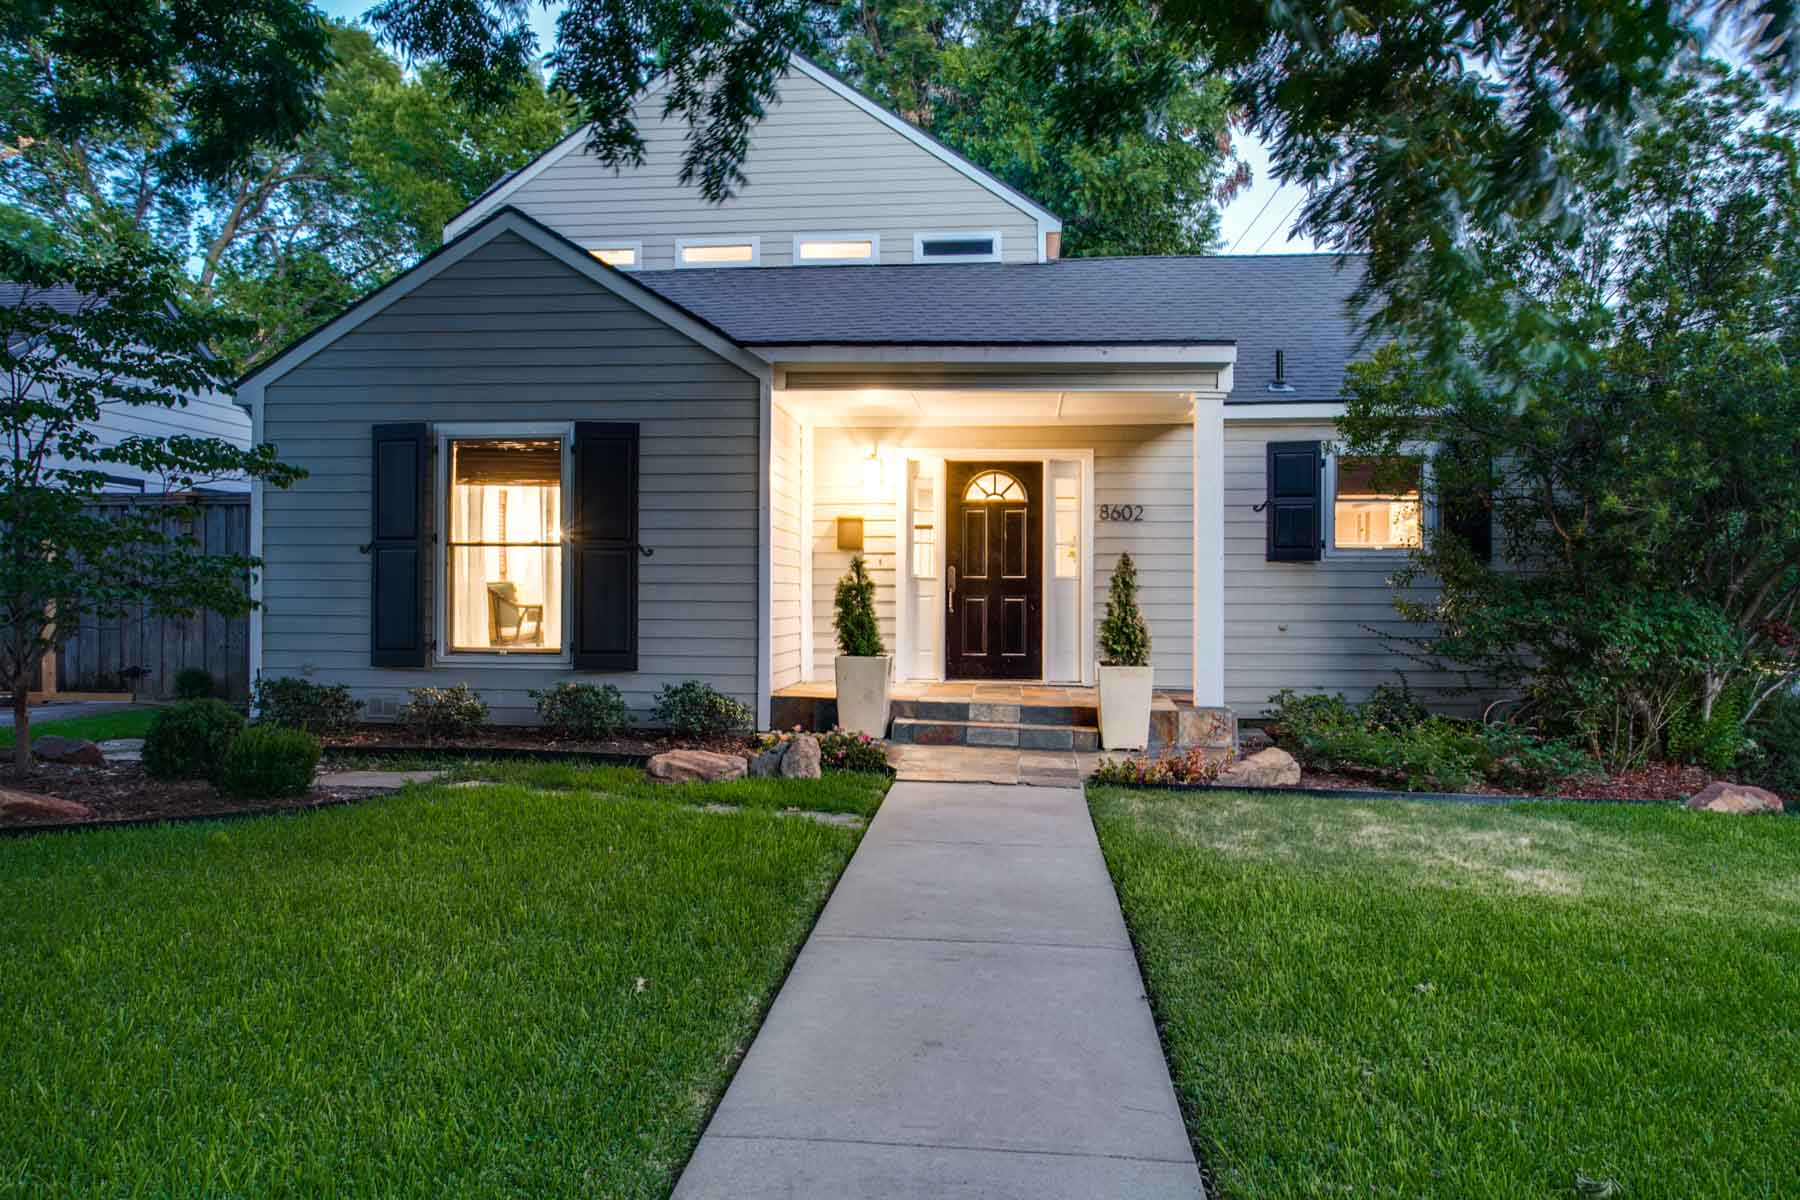 Single Family Home for Sale at 1930's Cottage 8602 Angora Street Dallas, Texas, 75218 United States